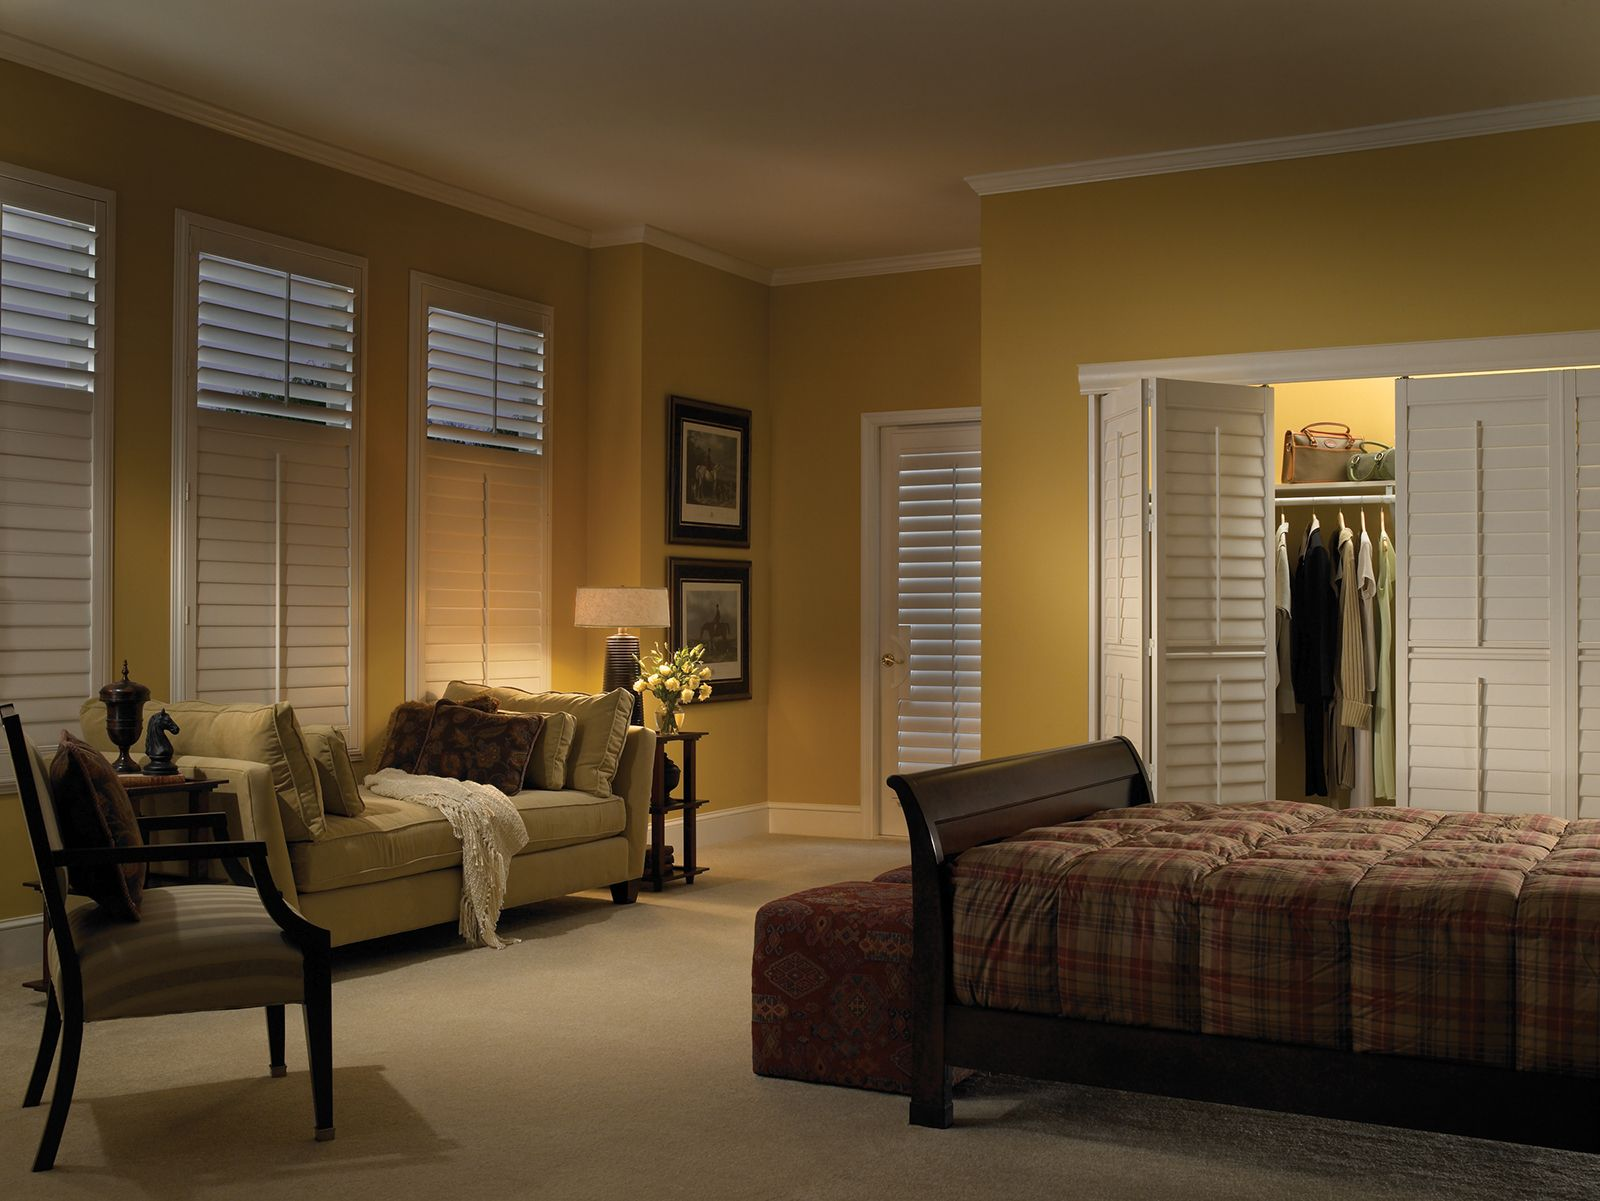 Pearl • Bi-fold closet doors with Deluxe Divider Rail • French Door Cut-out • 3½ inch louver • Trim Frame • Divider Rail • Tilt Bar